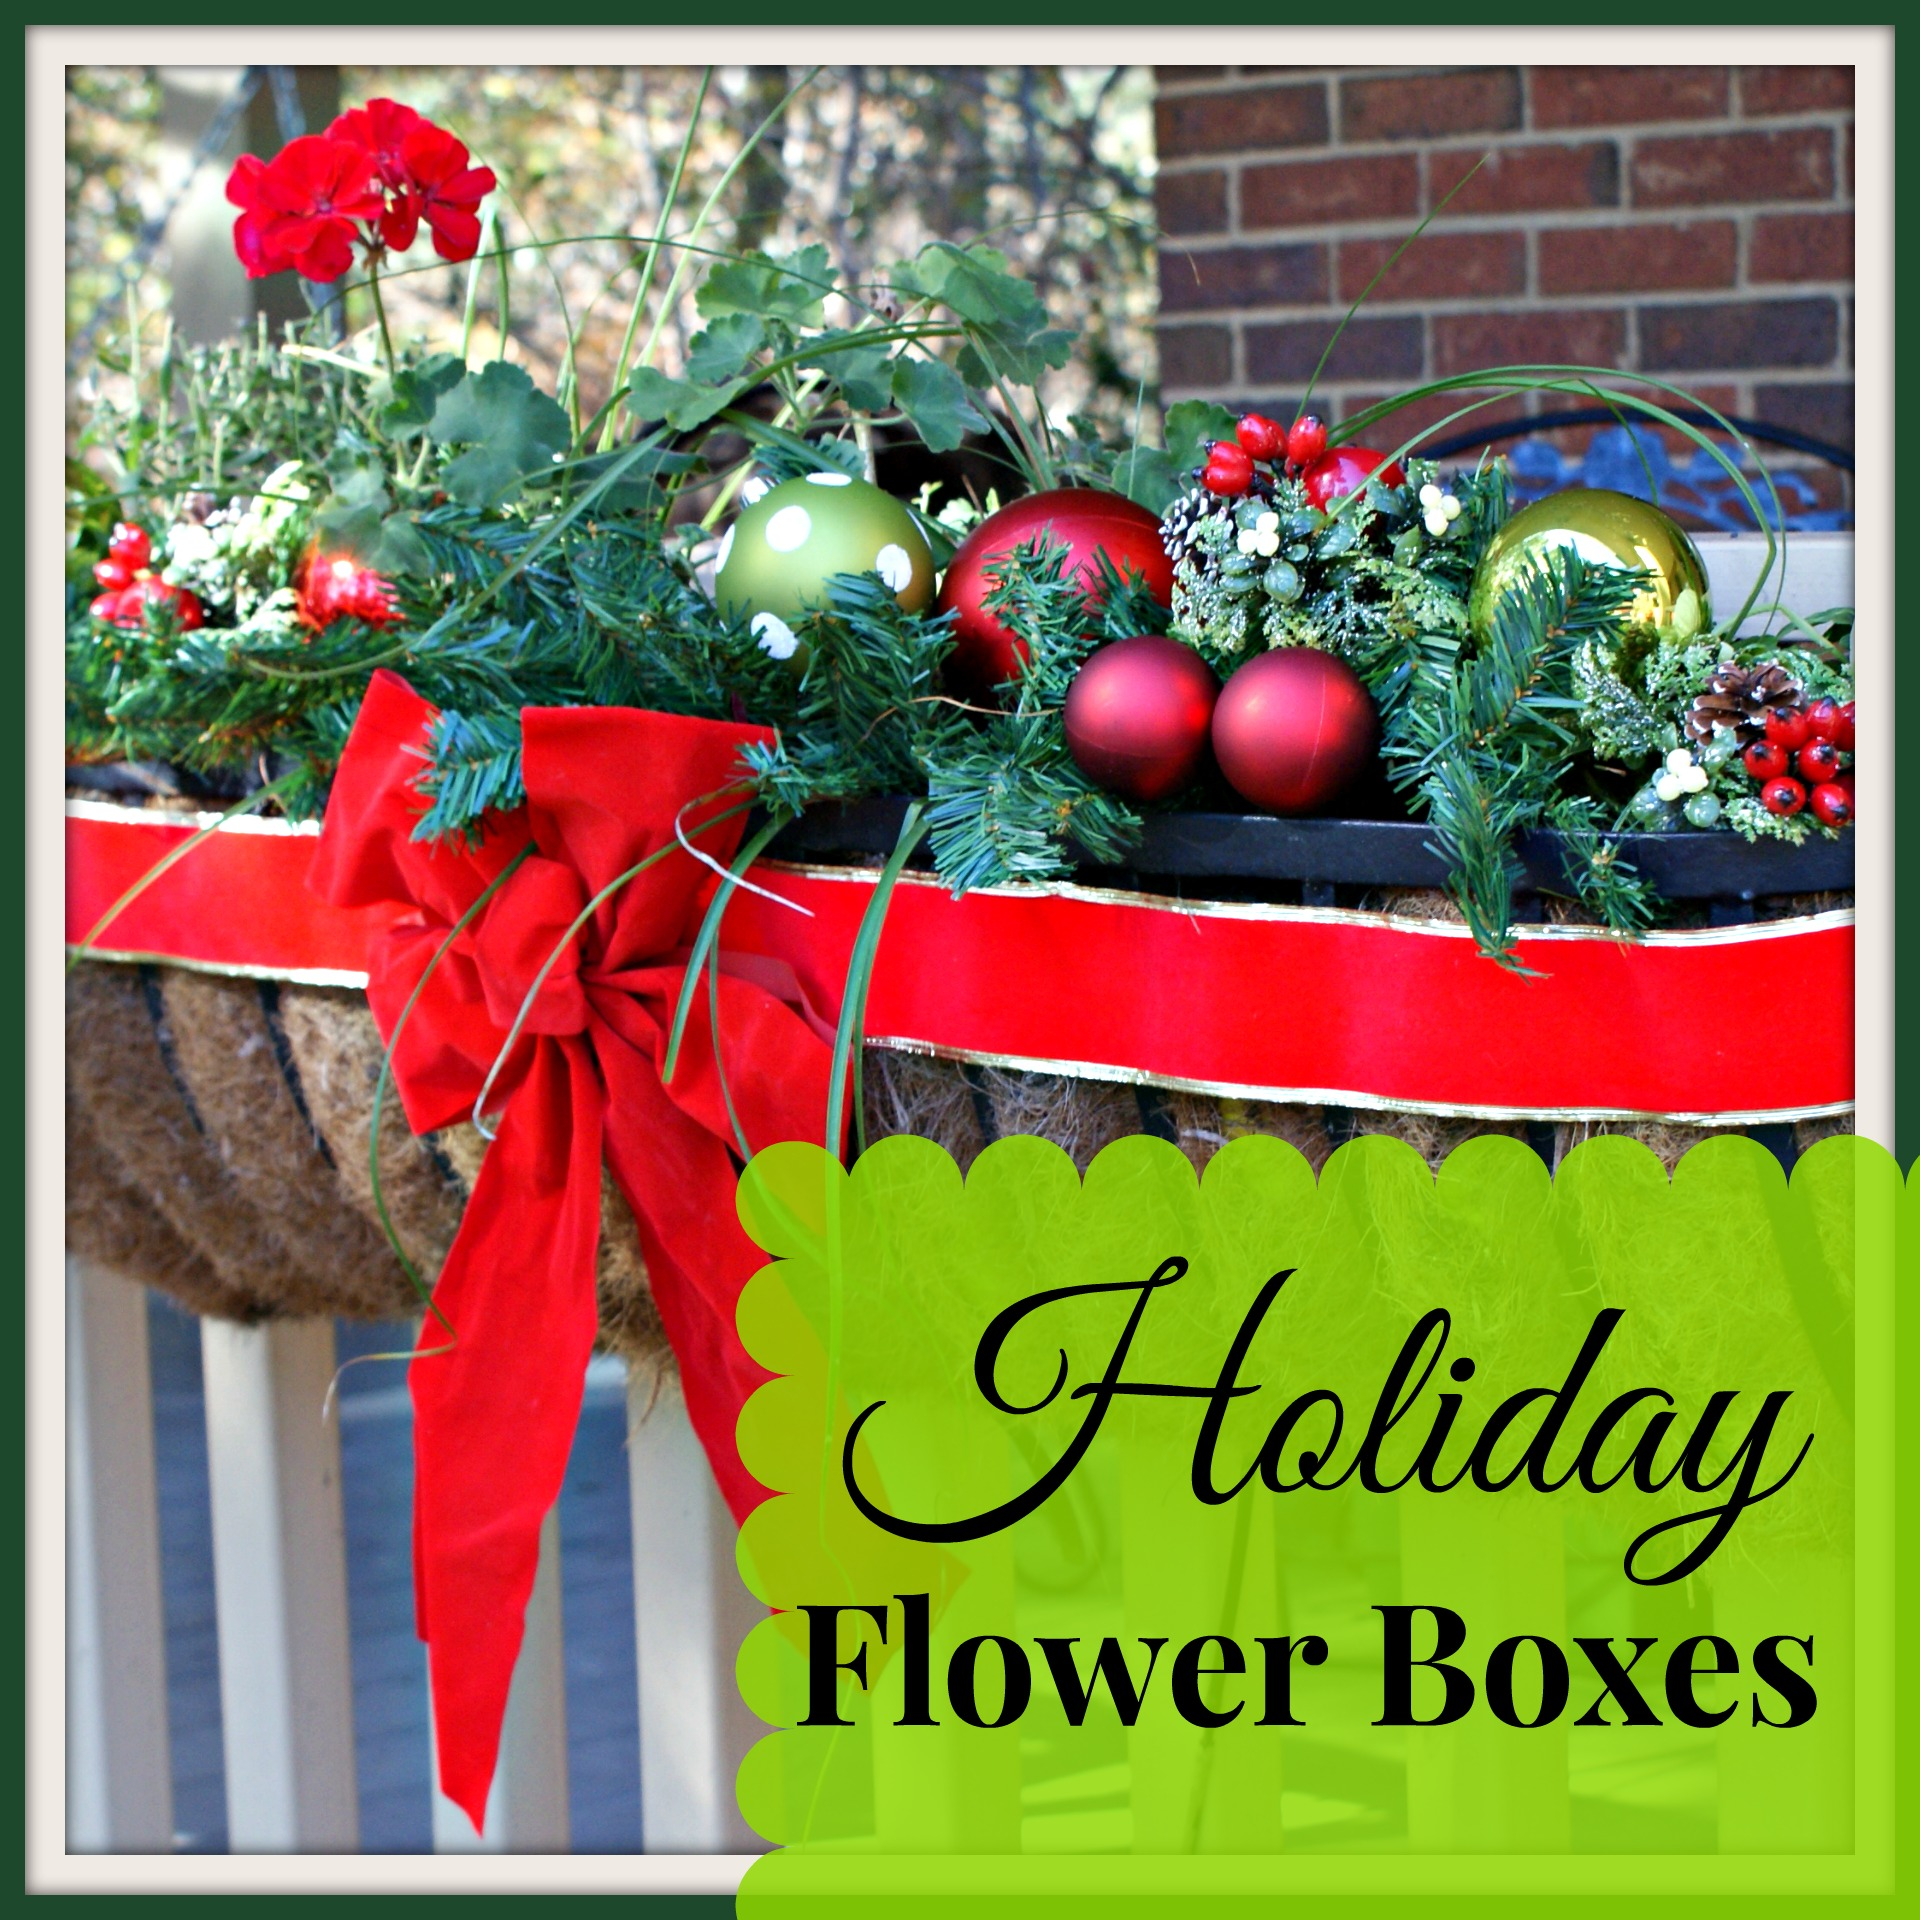 Christmas Decorations 2013: Cheery Christmas Flower Boxes For Outdoor Christmas Decorating